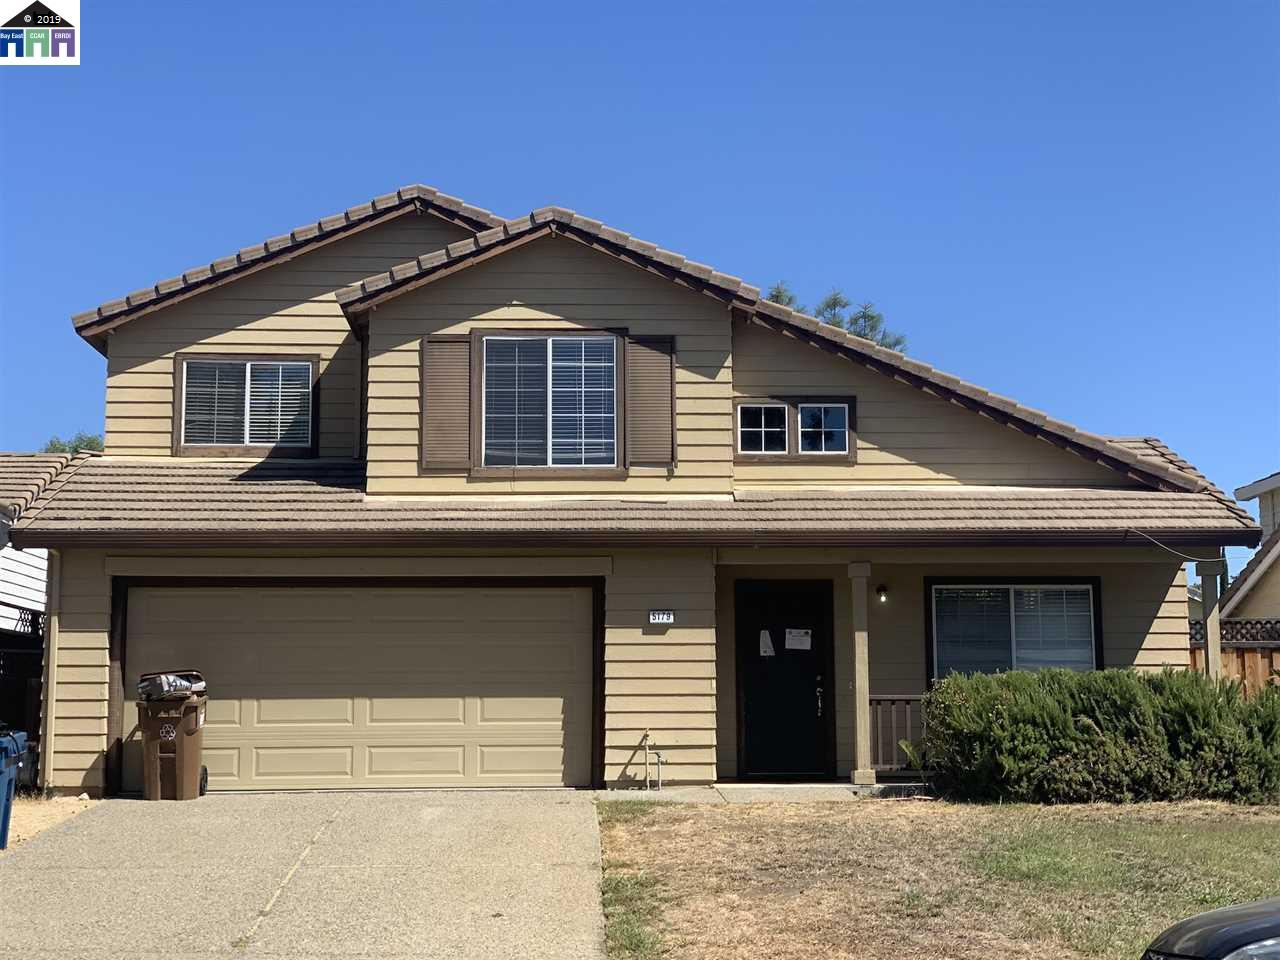 5179 Grass Valley Way Antioch, California 94531, 3 Bedrooms Bedrooms, 7 Rooms Rooms,2 BathroomsBathrooms,Residential,For Sale,5179 Grass Valley Way,40882480